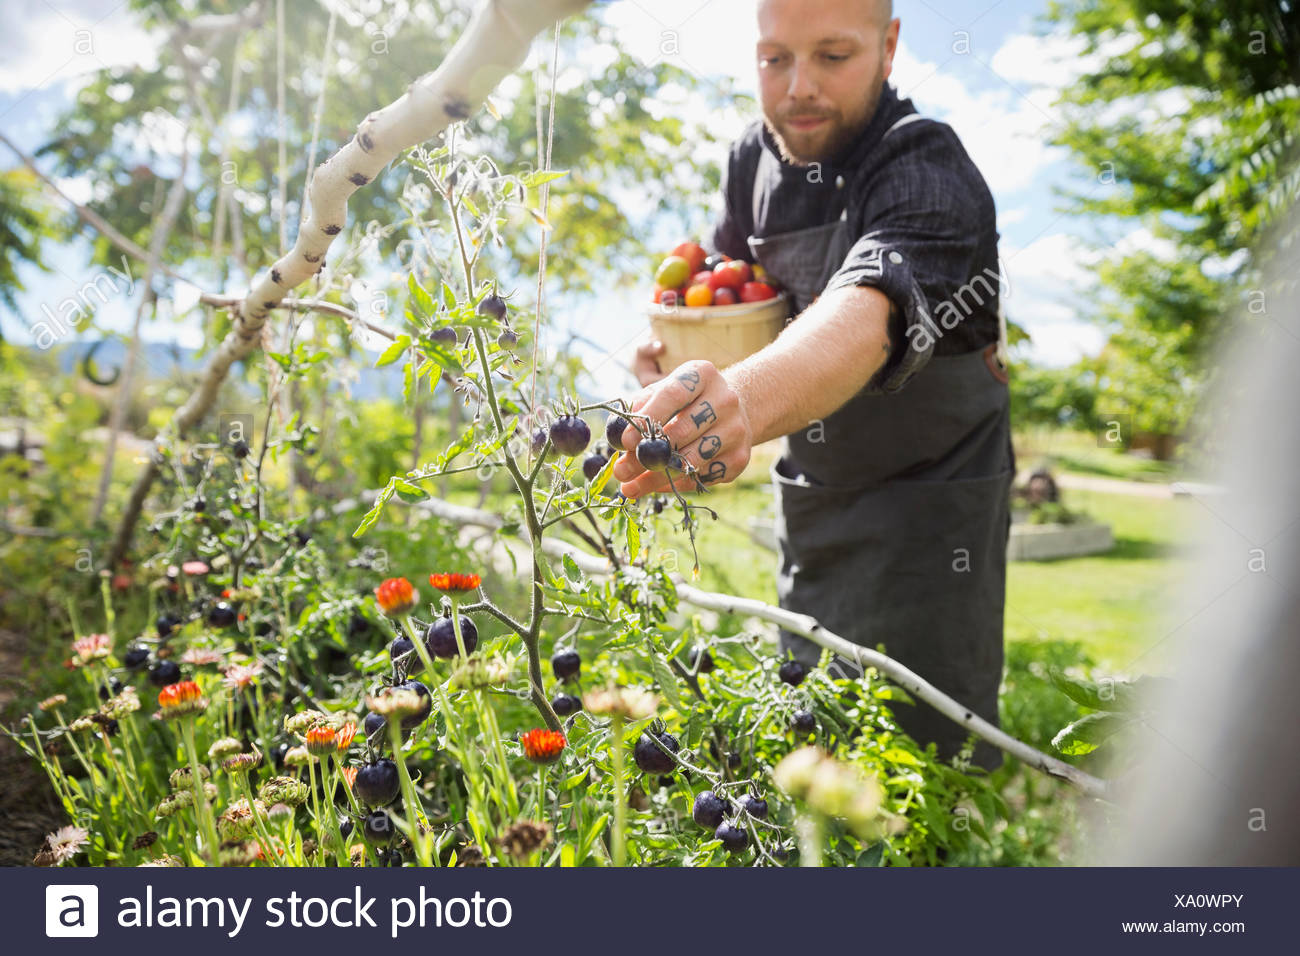 Farm-to-table chef harvesting ripe tomatoes in sunny vegetable garden Stock Photo